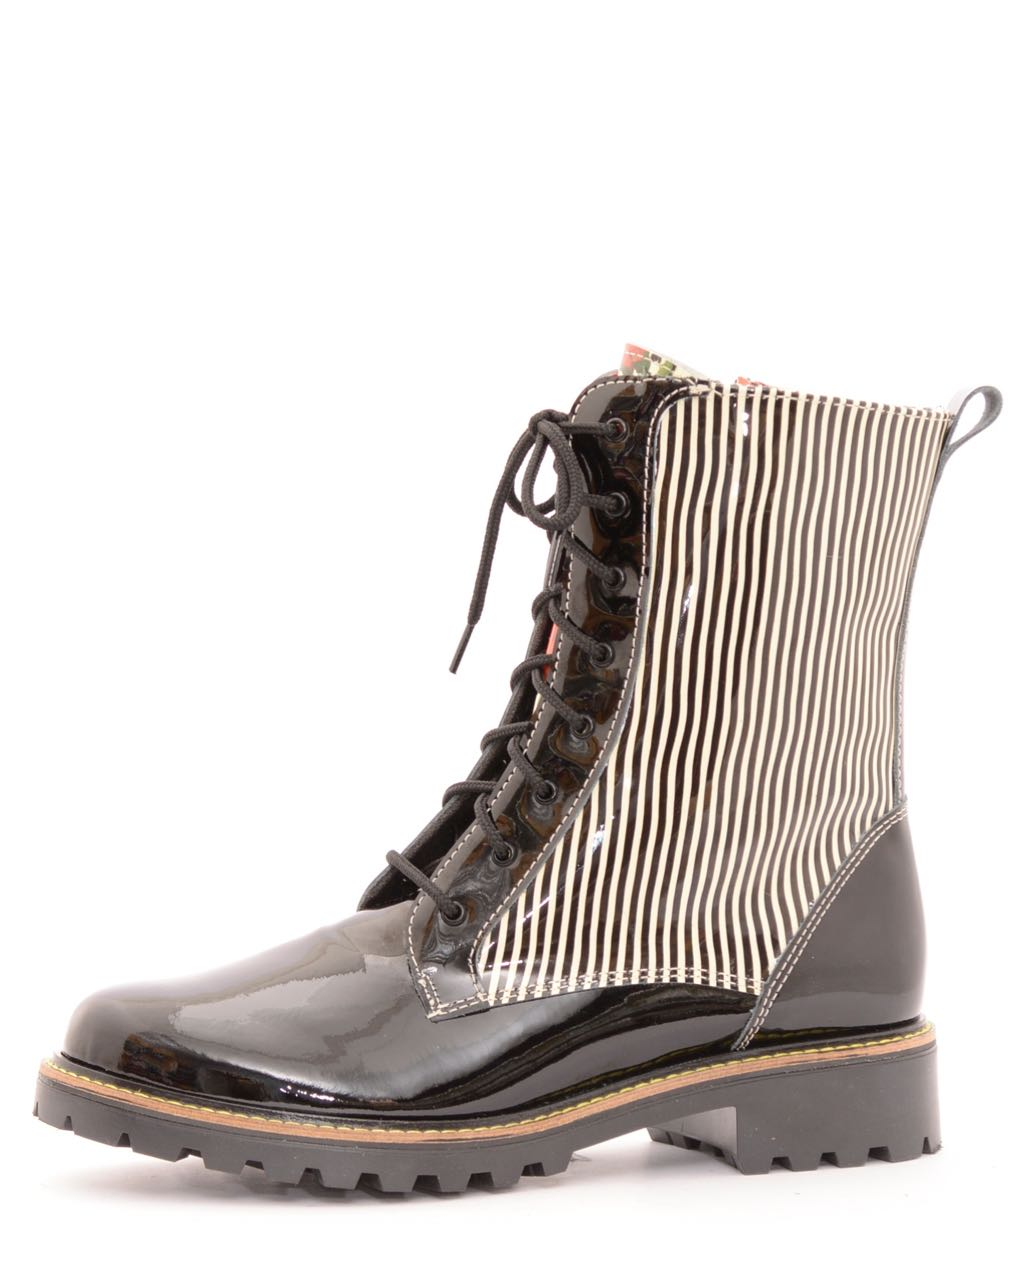 Mael Stripes Design Boots